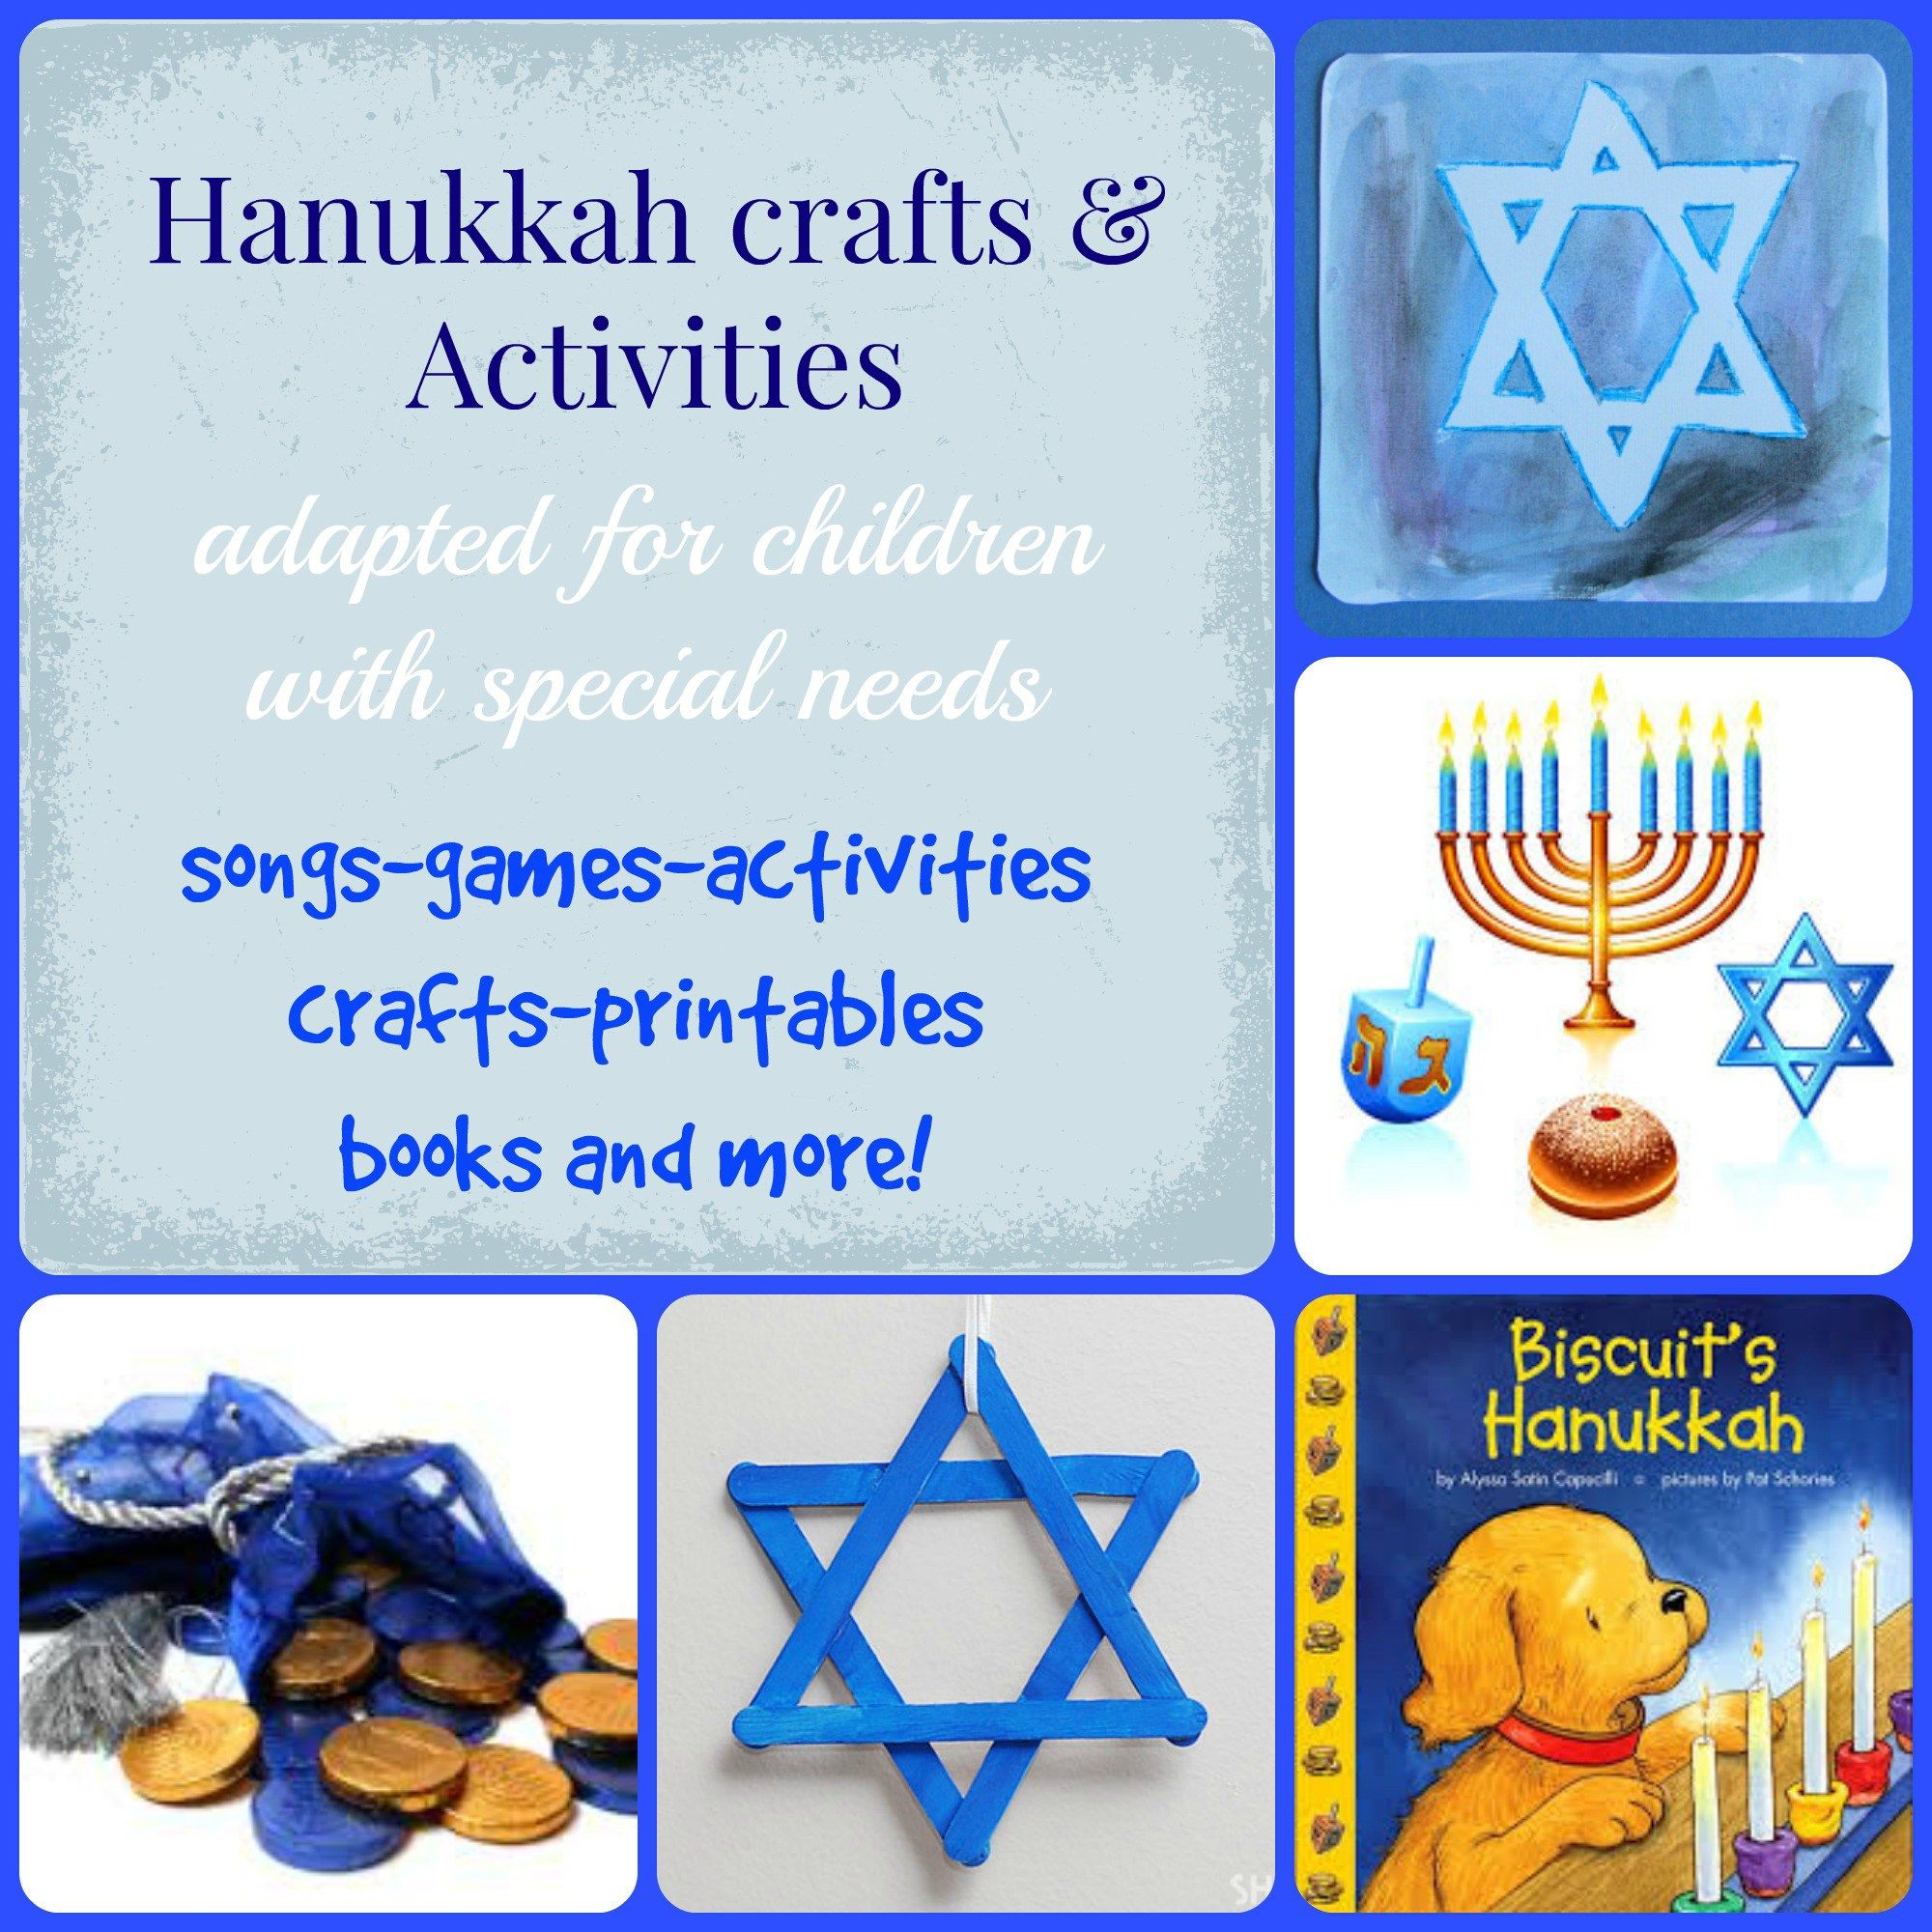 More Than 20 Adaptive Hanukkah And Dreidel Activities For Kids With Special Needs Hanukkah Crafts Hanukkah Holiday Crafts For Kids [ 2000 x 2000 Pixel ]